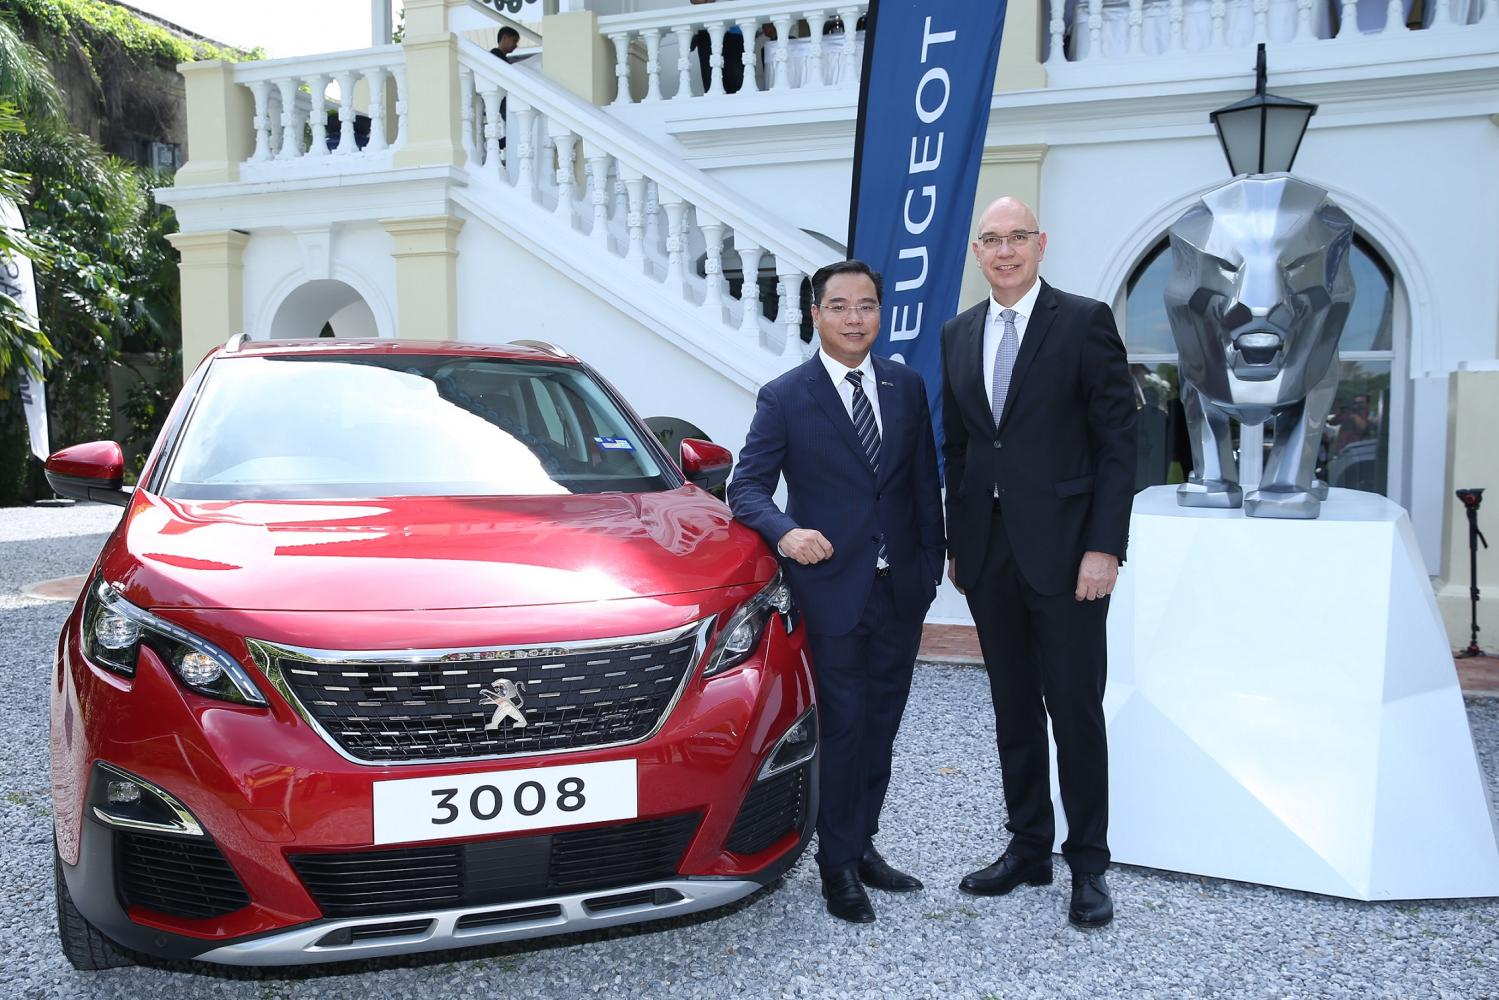 MGC adds Peugeot to its import stable